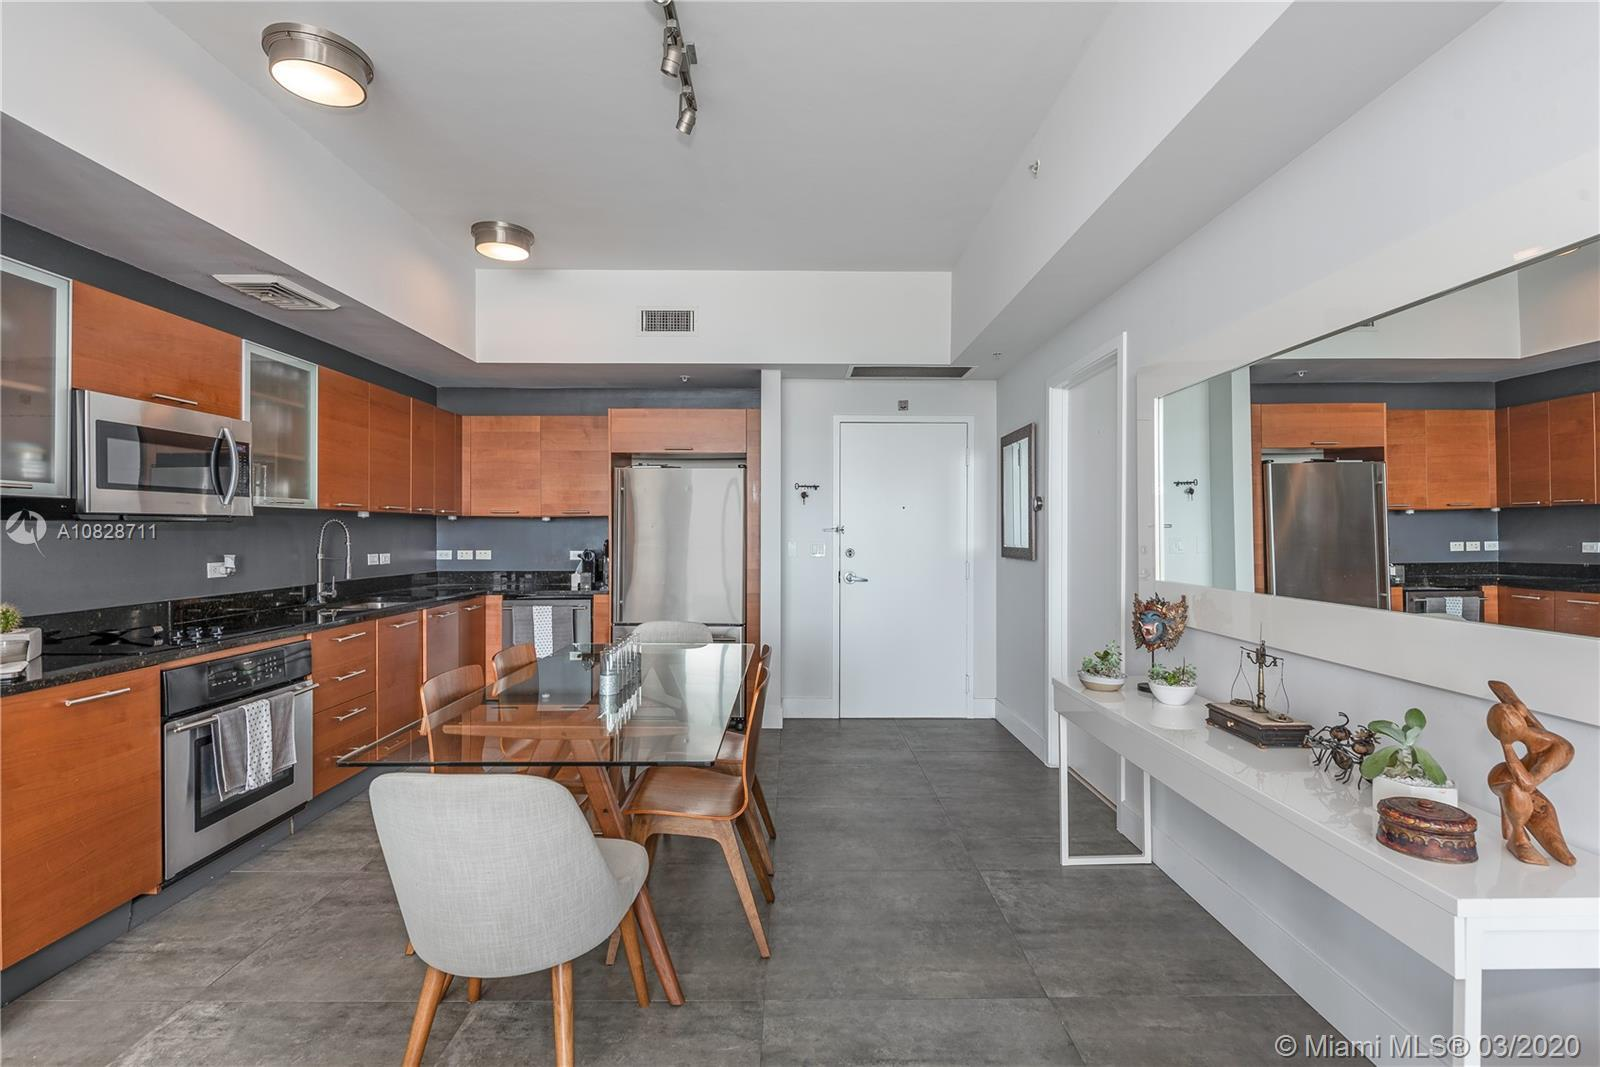 STUNNING UNIT. Recently renovated 1bd/1.5bath condo for sale in the heart of Midtown Miami. Brand ne